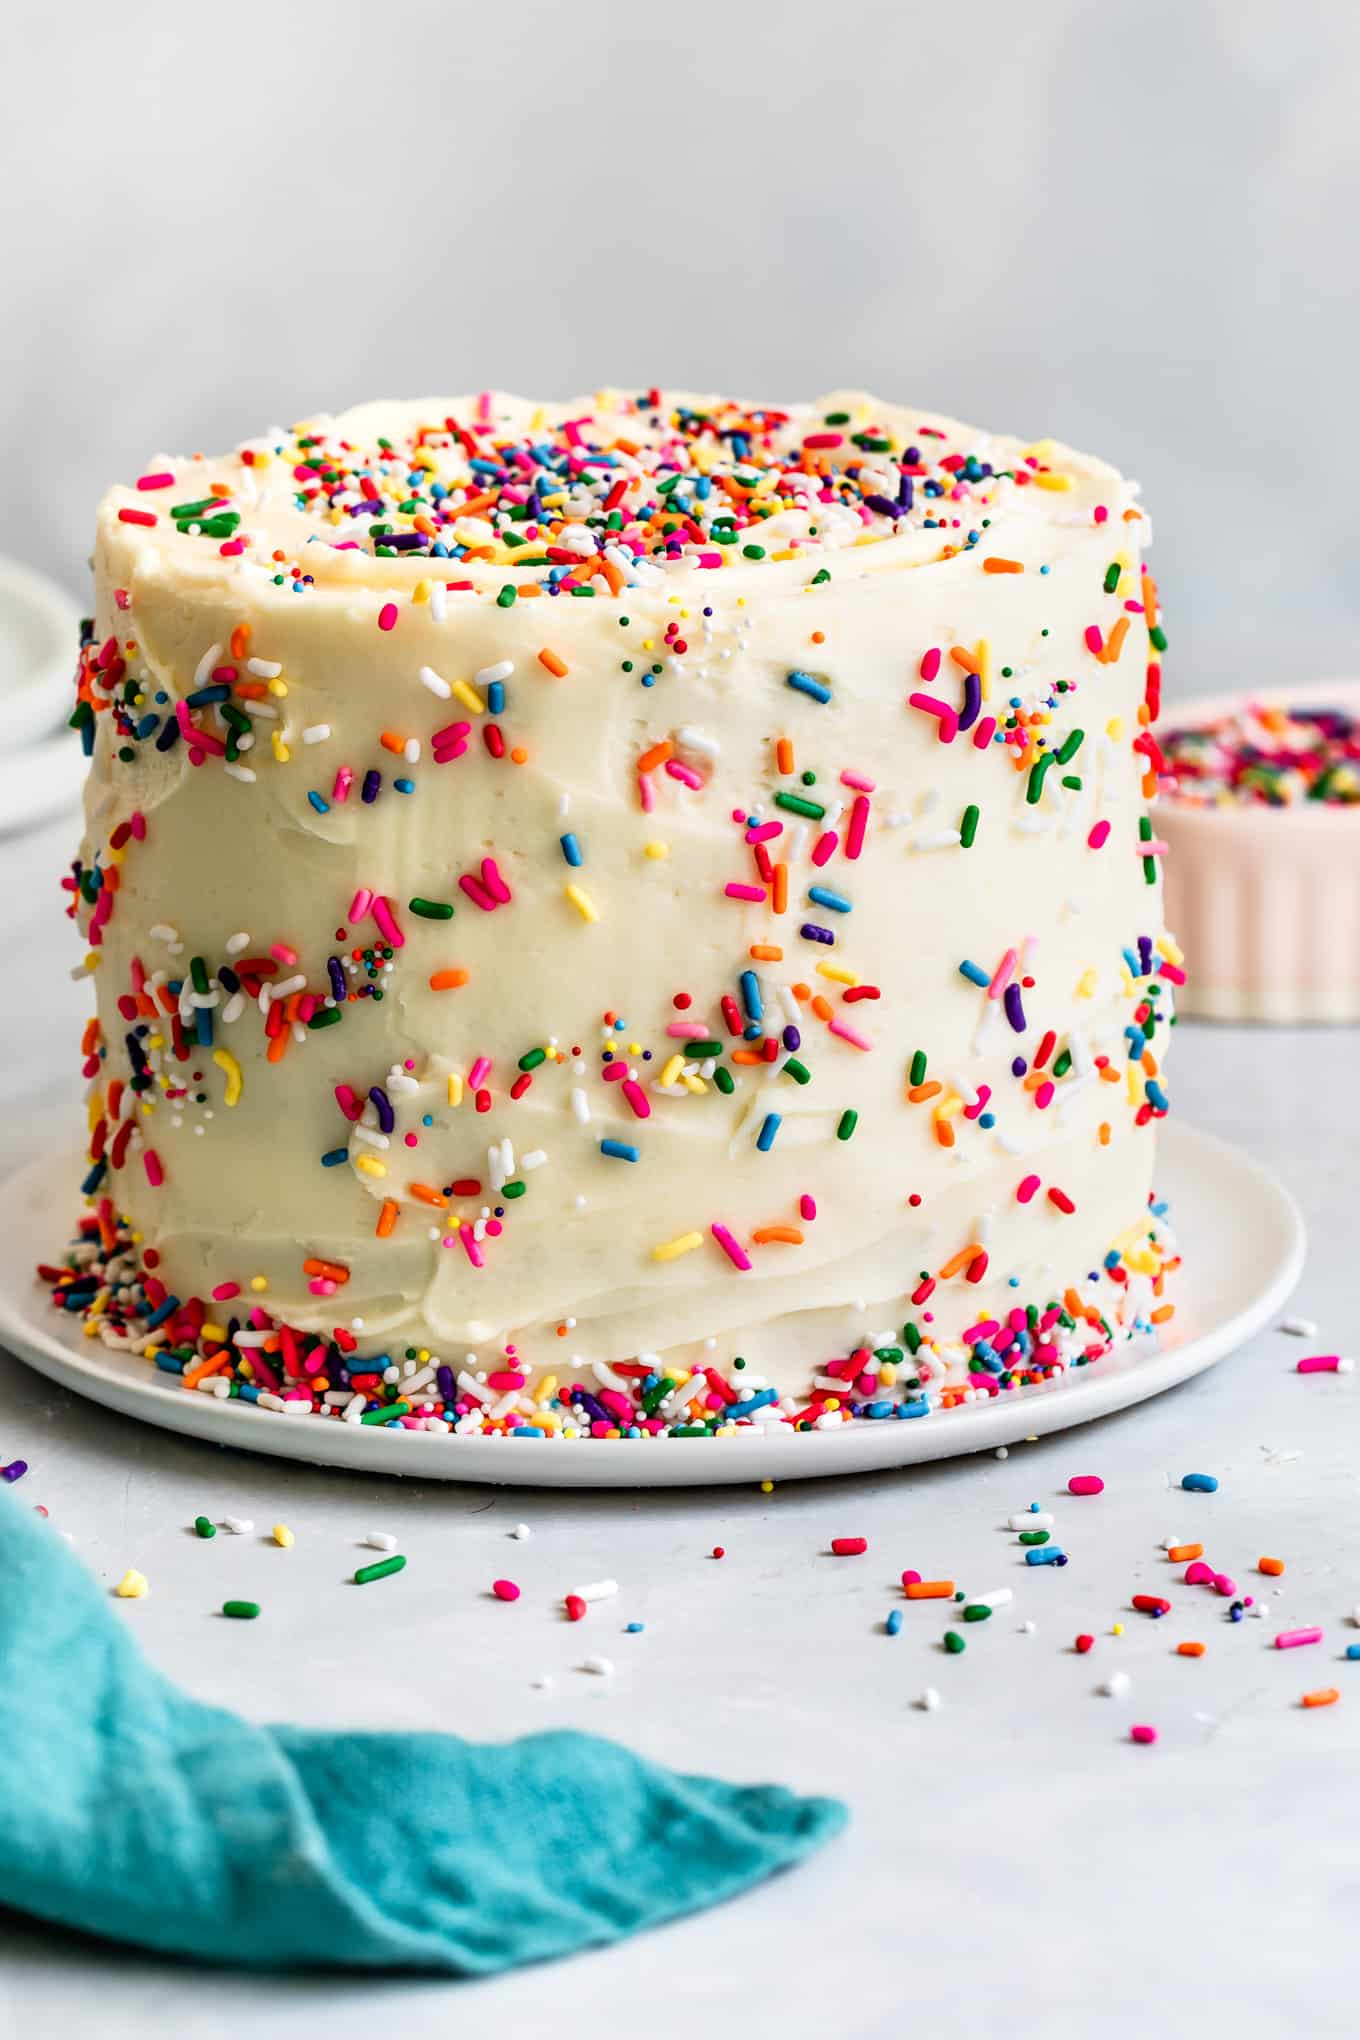 Frosted Gluten-Free Sprinkle Cake